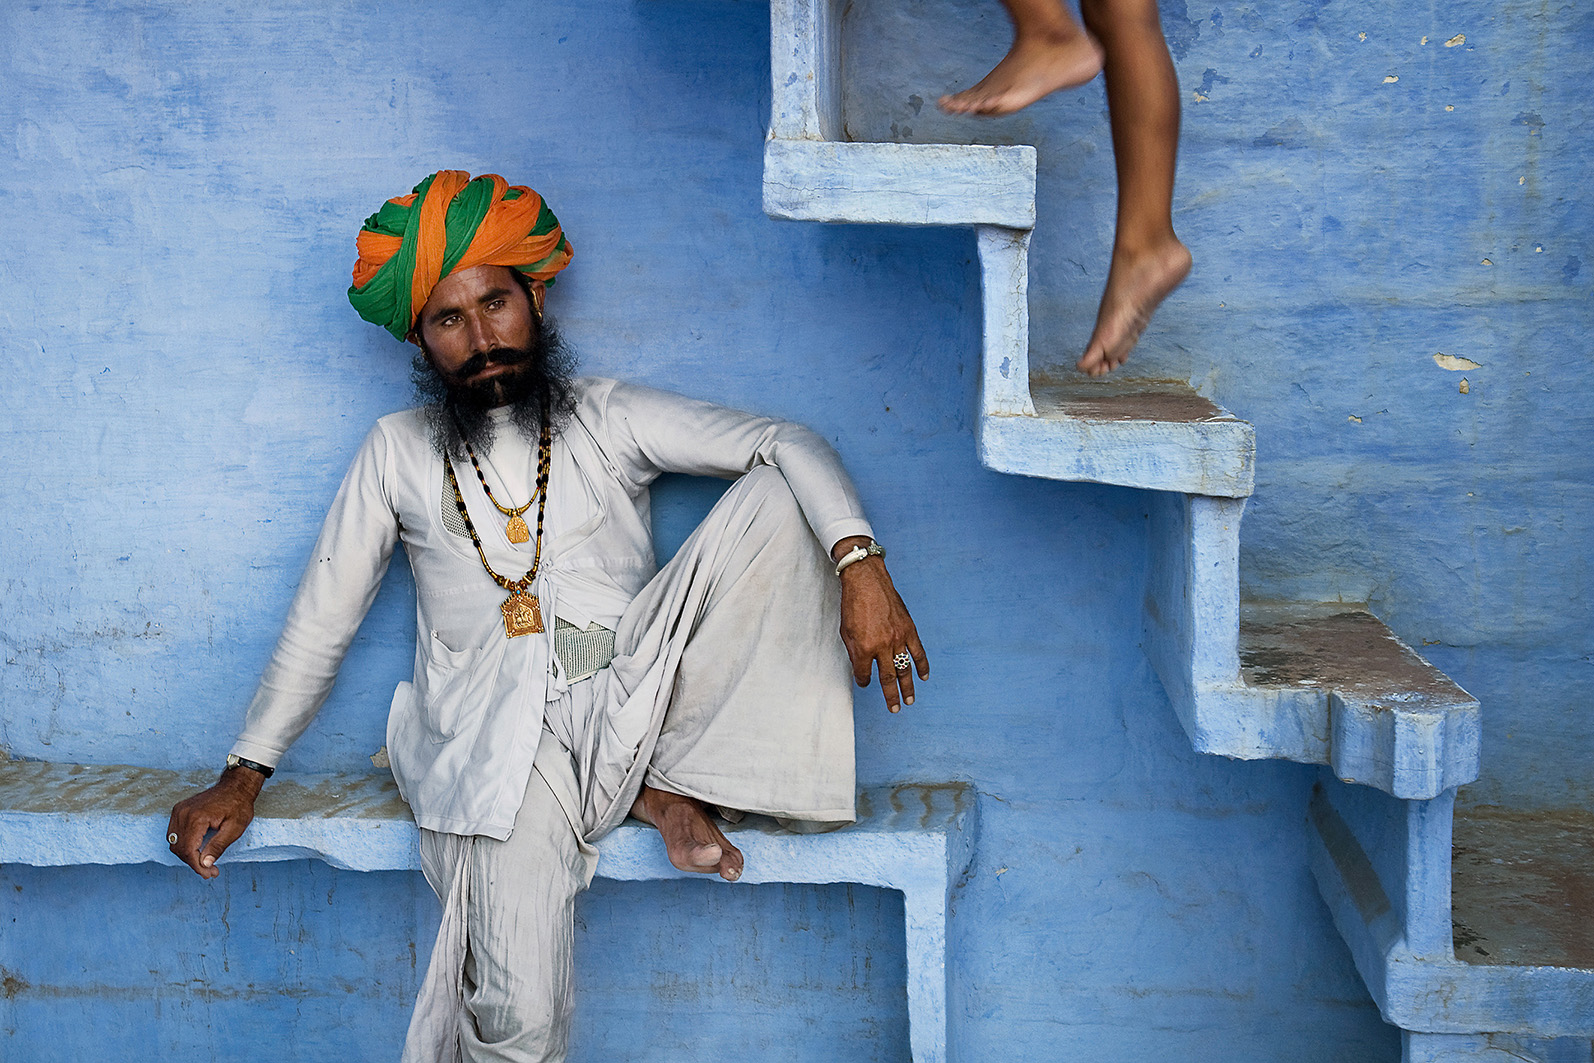 Steve McCurry: Jodhpur, India, 2005